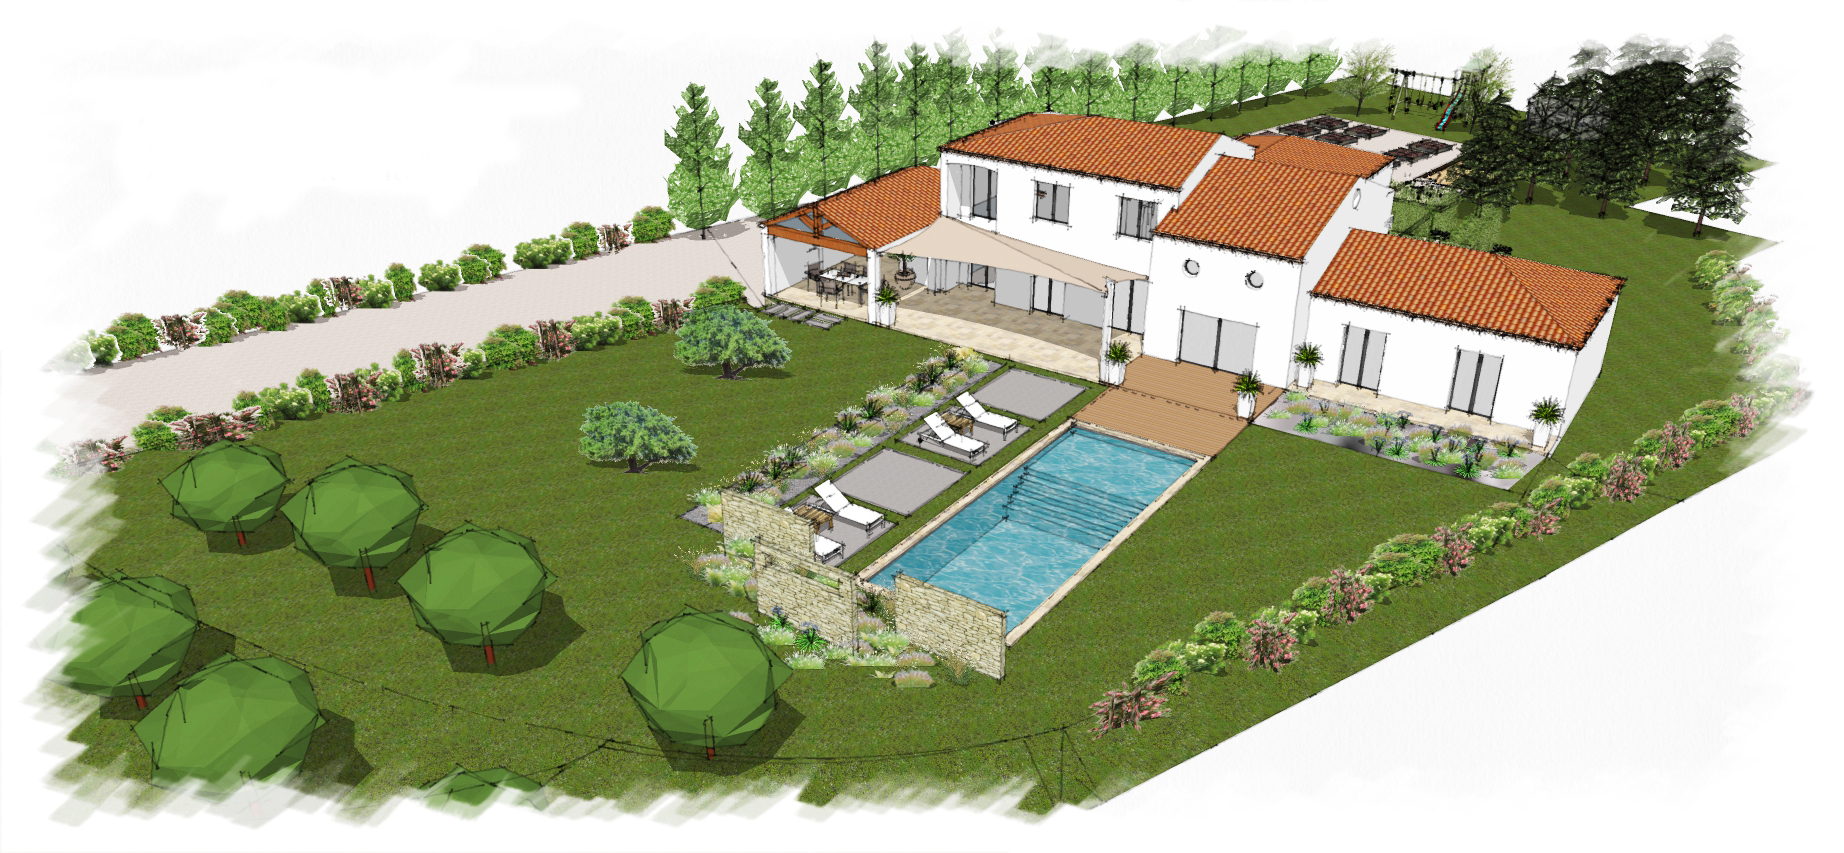 Actualit architectes paysagistes valea concept for Conception jardin